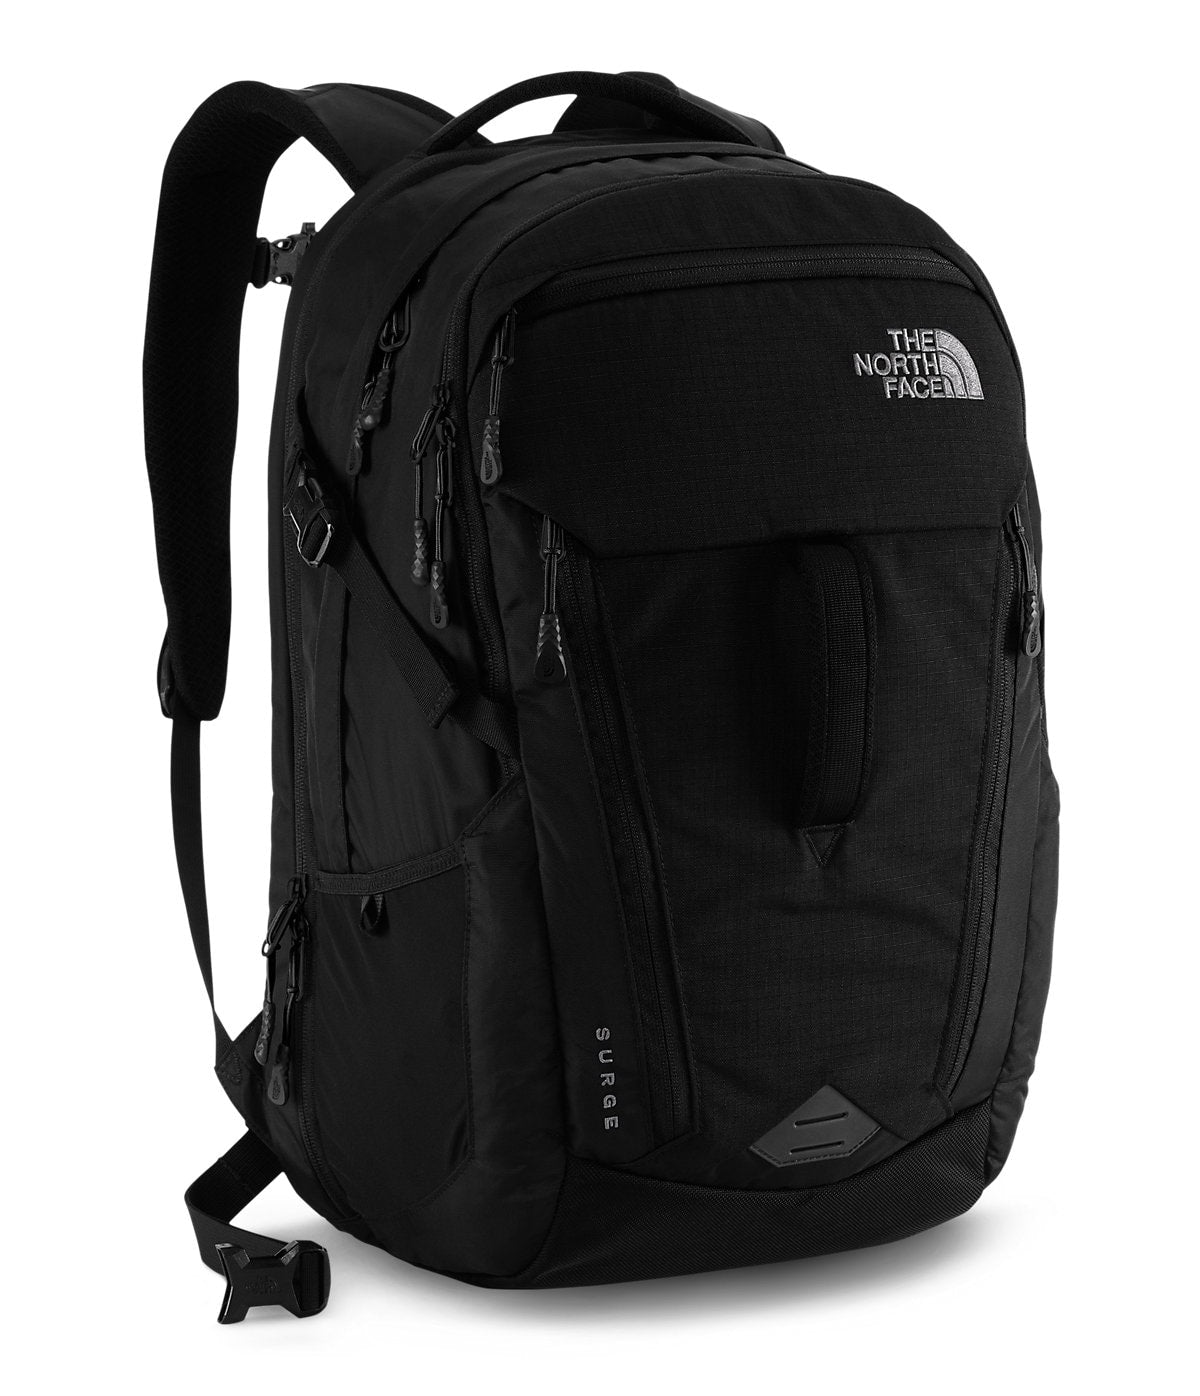 North Face® Surge Backpack